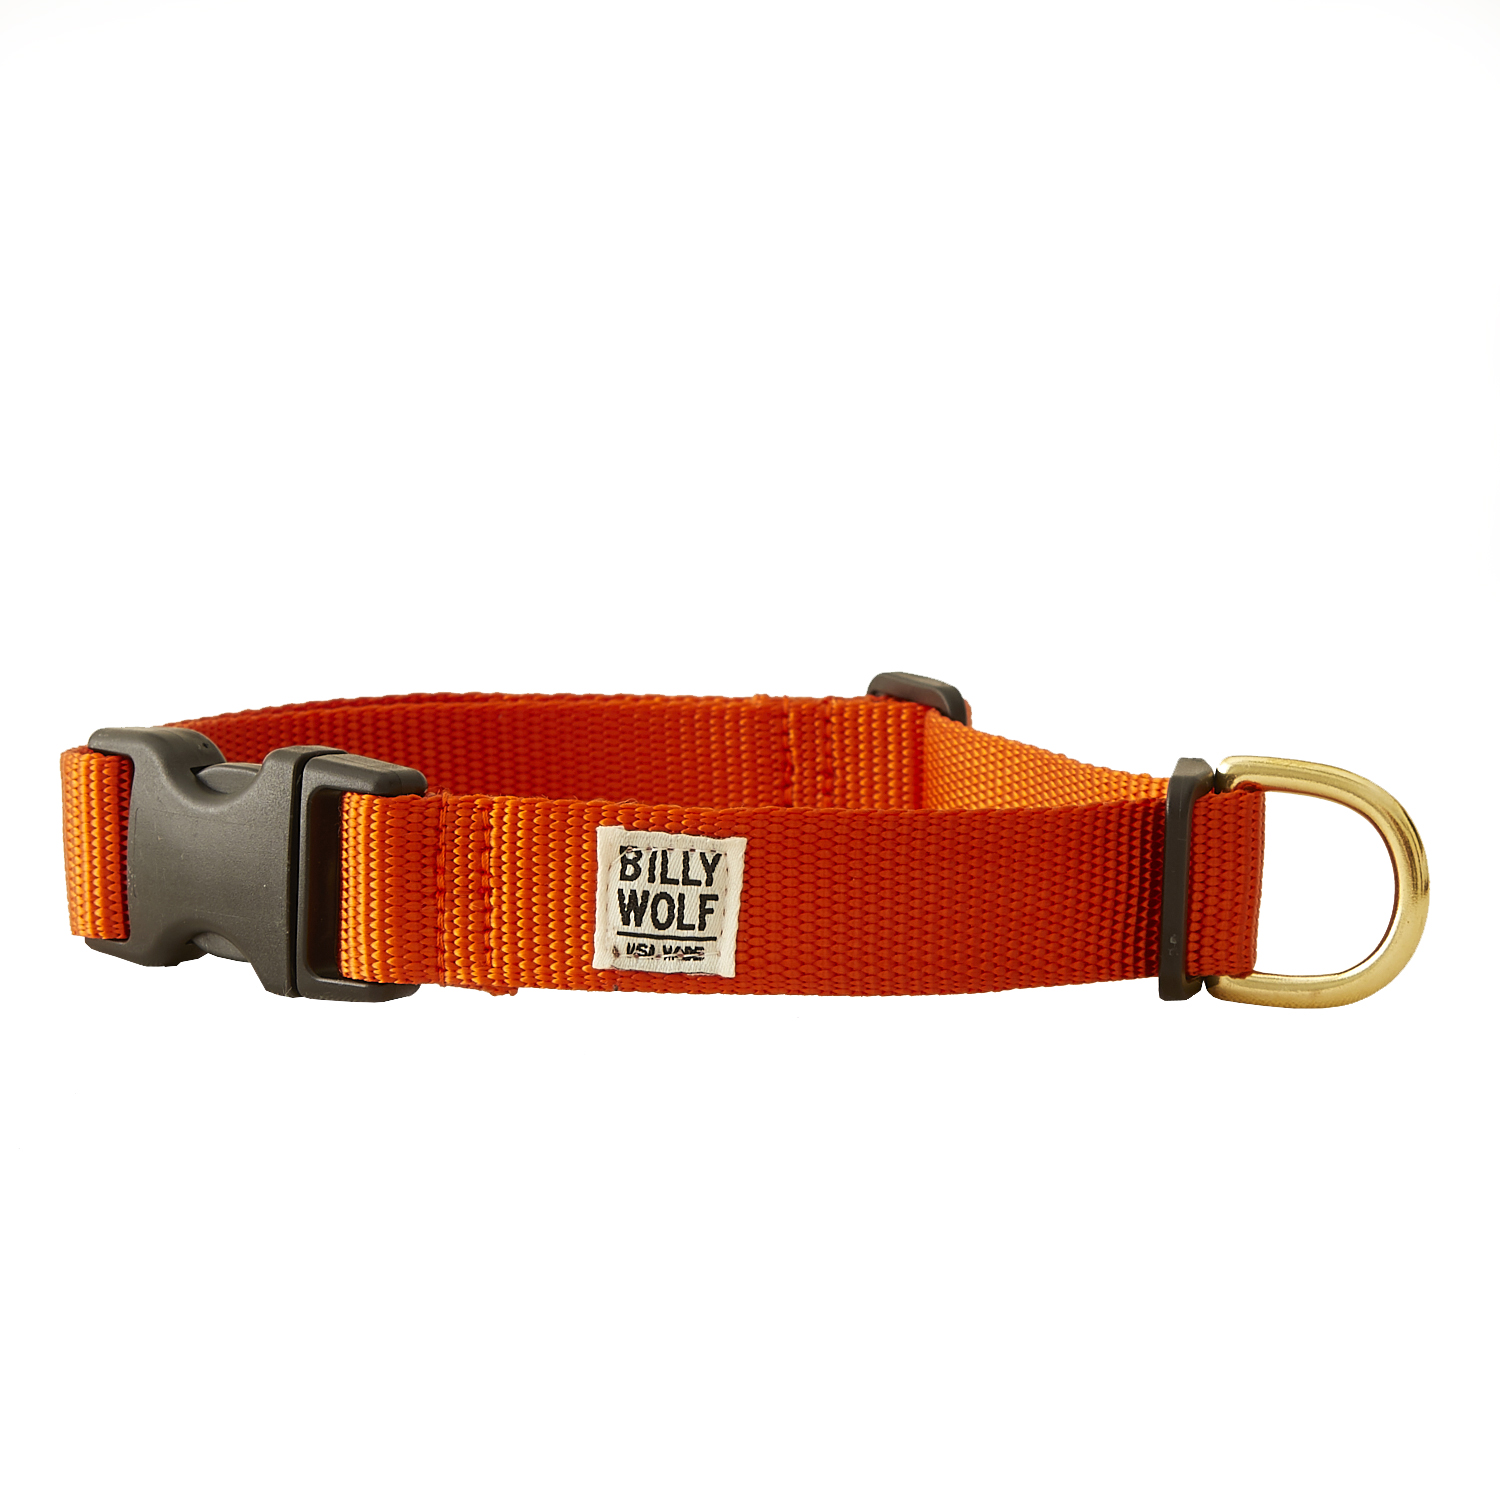 The Orange Scout Collar - With rugged and sporty heavy duty nylon and a military-grade buckle, this collar will hold up to burrs, snags and any other mischief they find themselves in, without coming off. And you'll love the easy-to-spot orange collar that stands out in a sea of trees. Choose from six colors: red, black, hunter, tan, orange or navy.